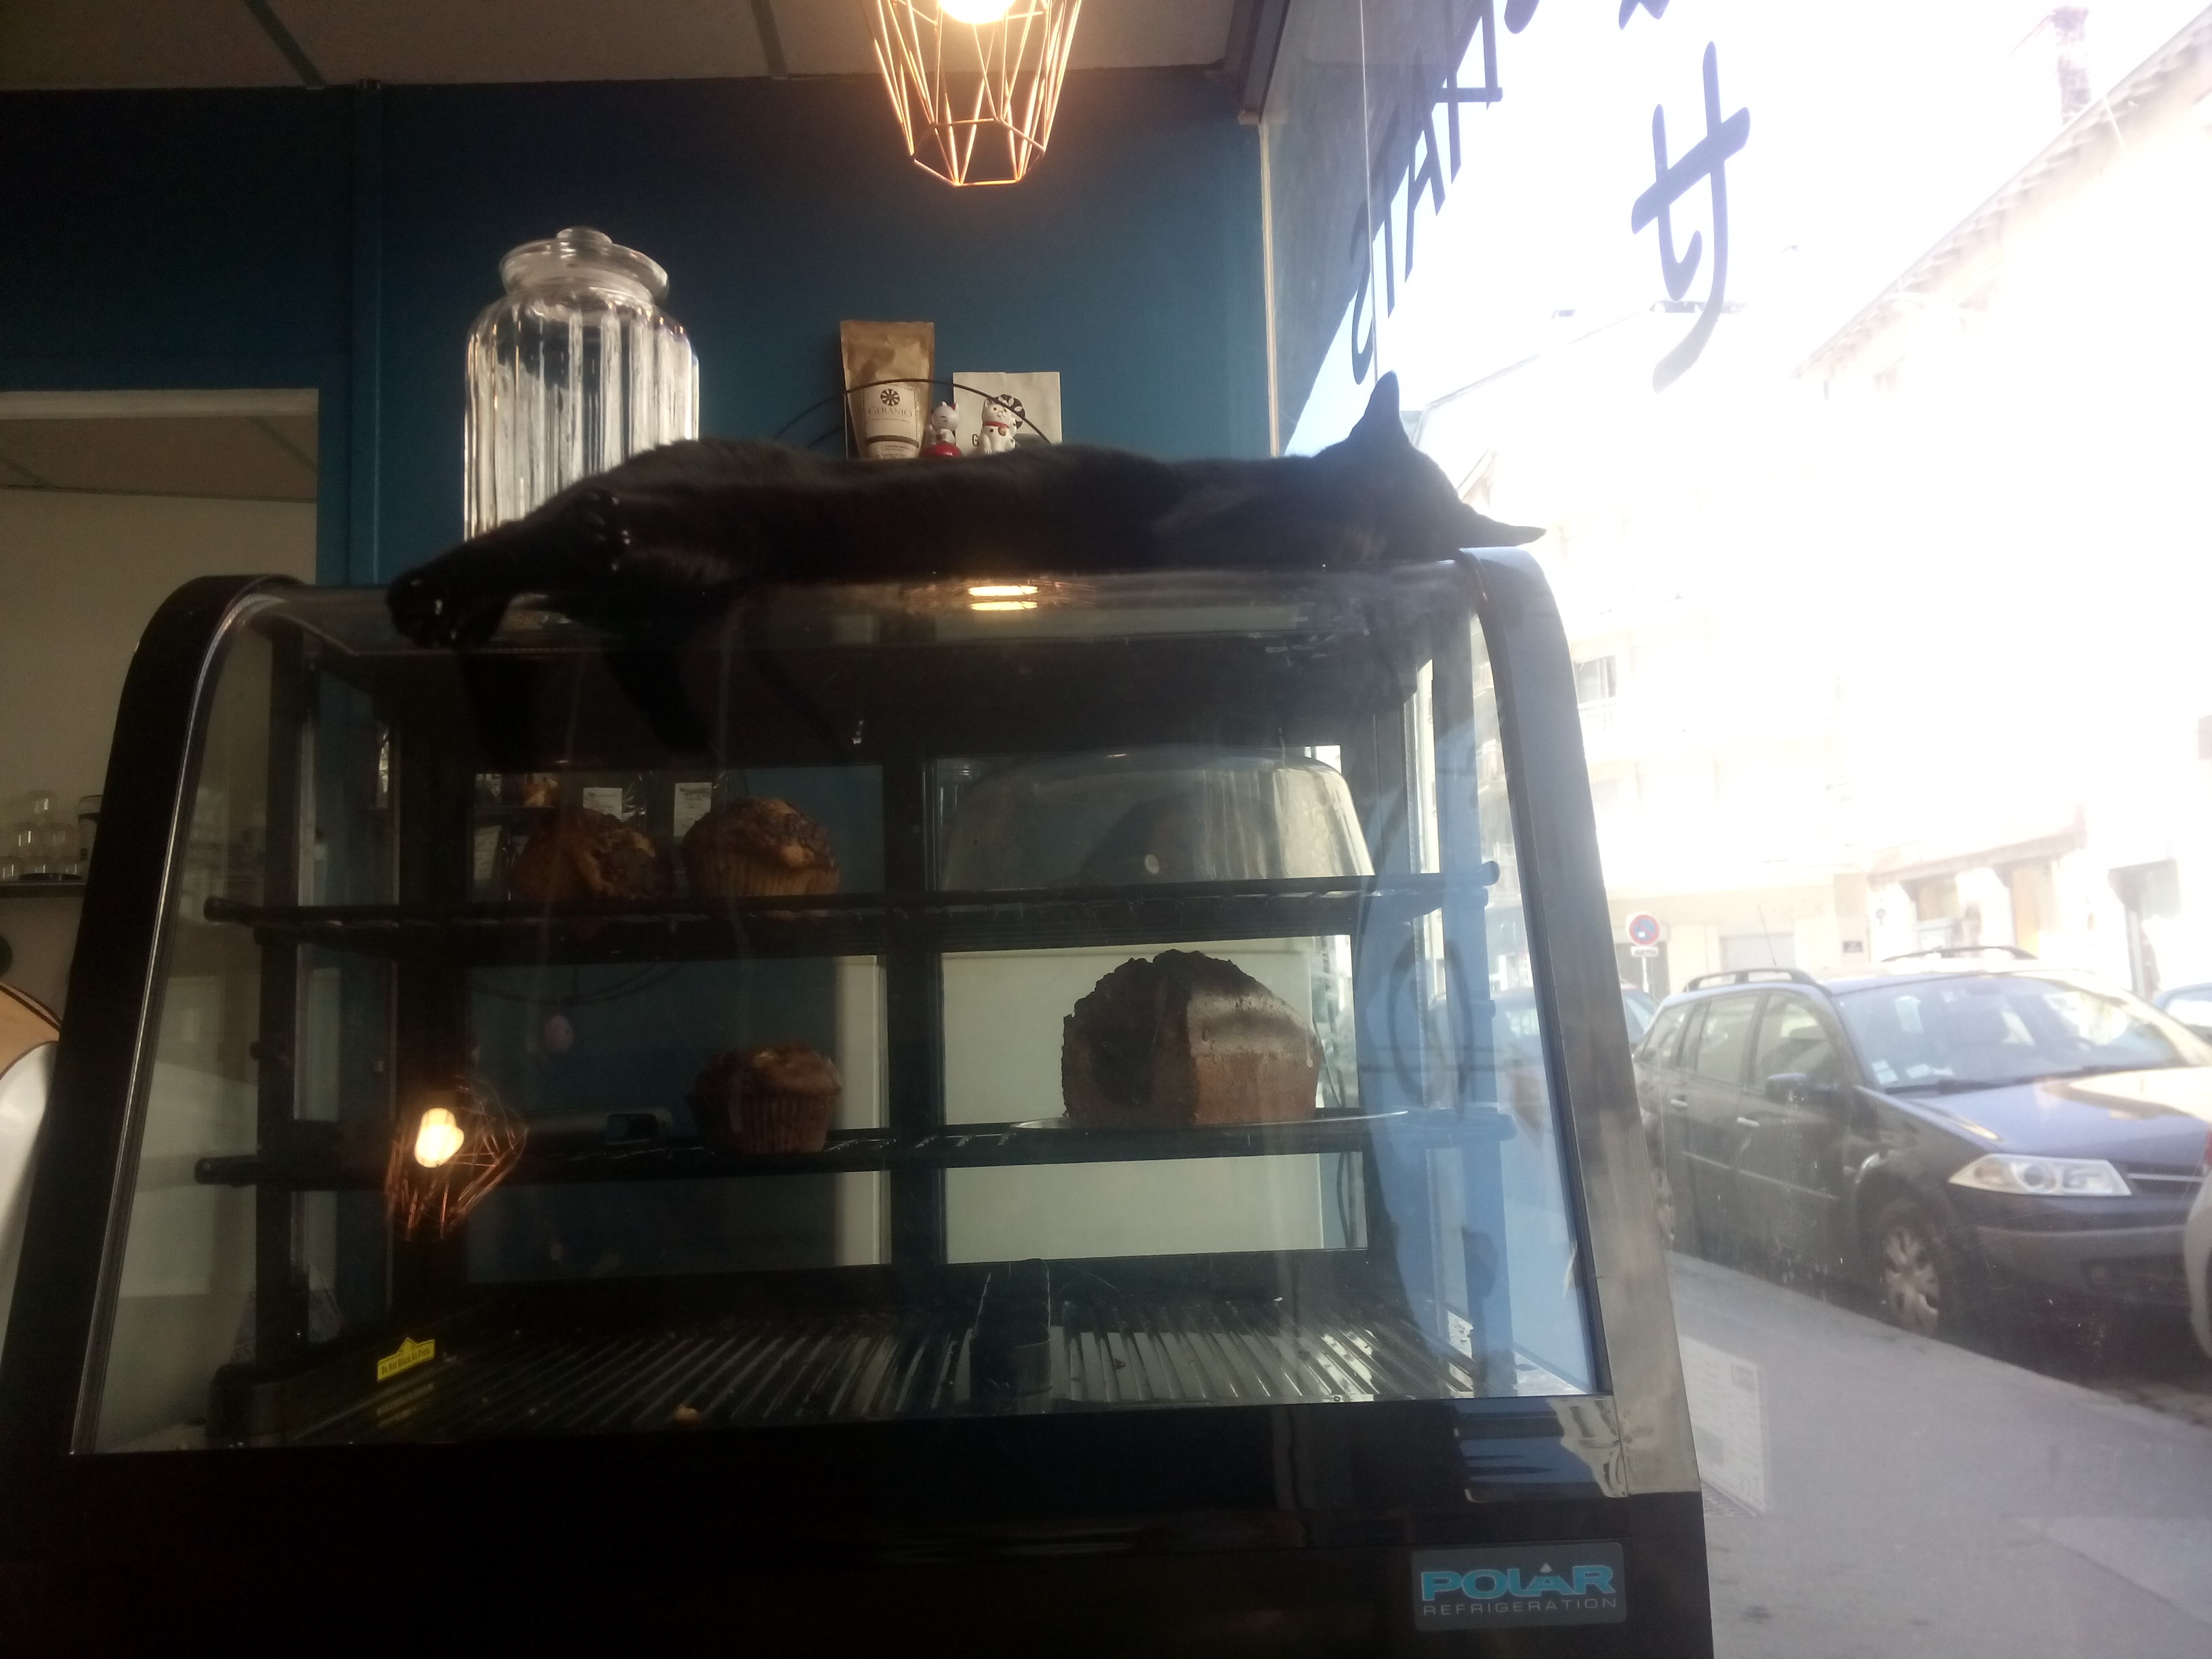 A glass cabinate of cakes with a black cat sprawled on top